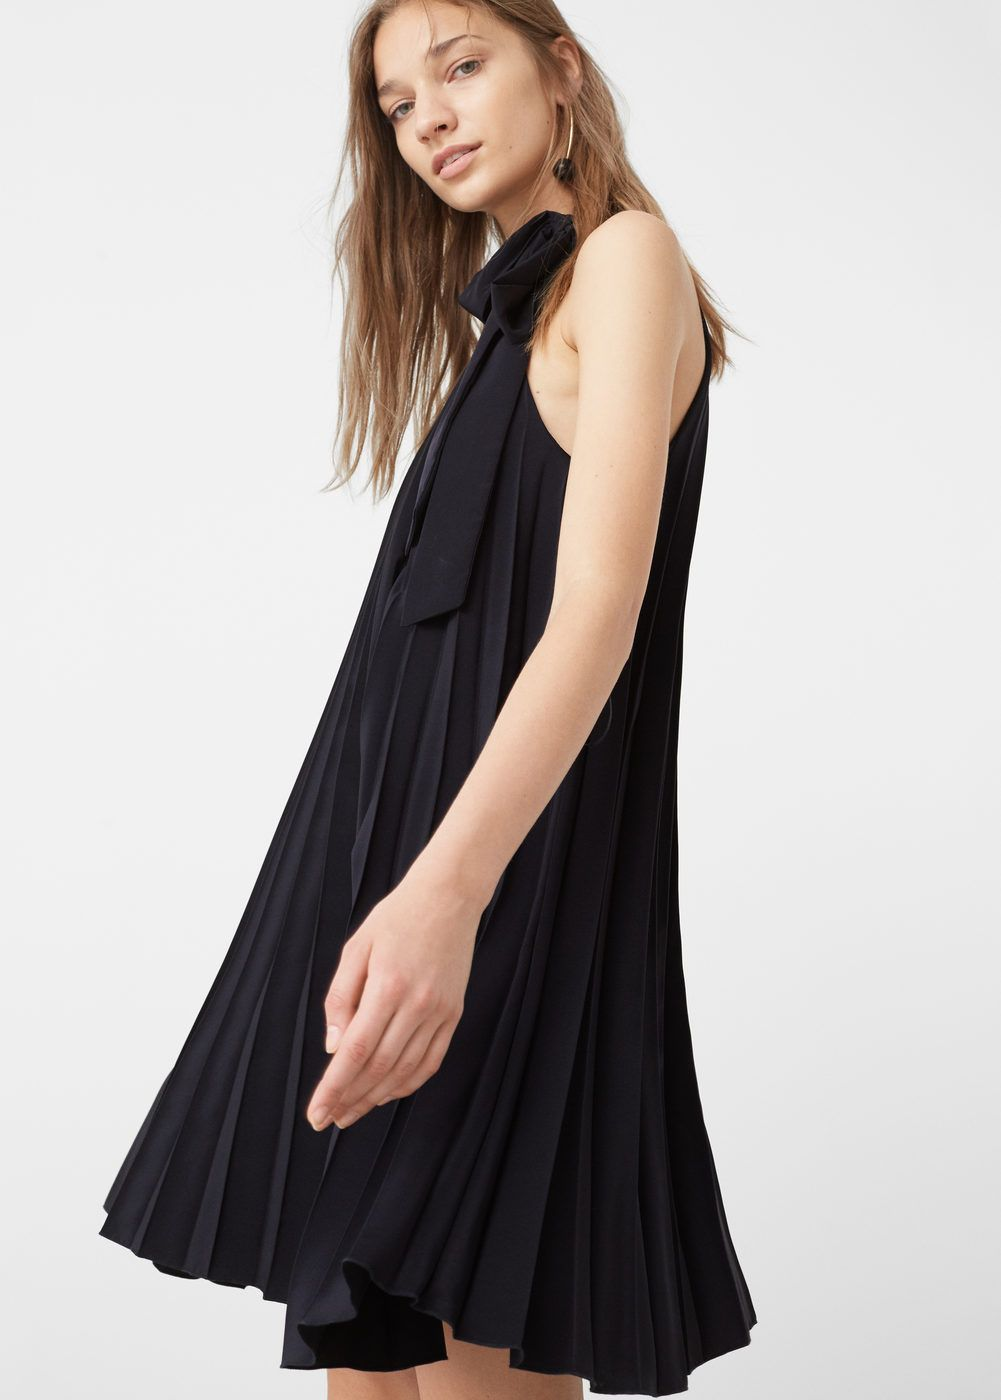 Black dresses for wedding  Pleated dress  Woman  Robes For women and Pleated dresses